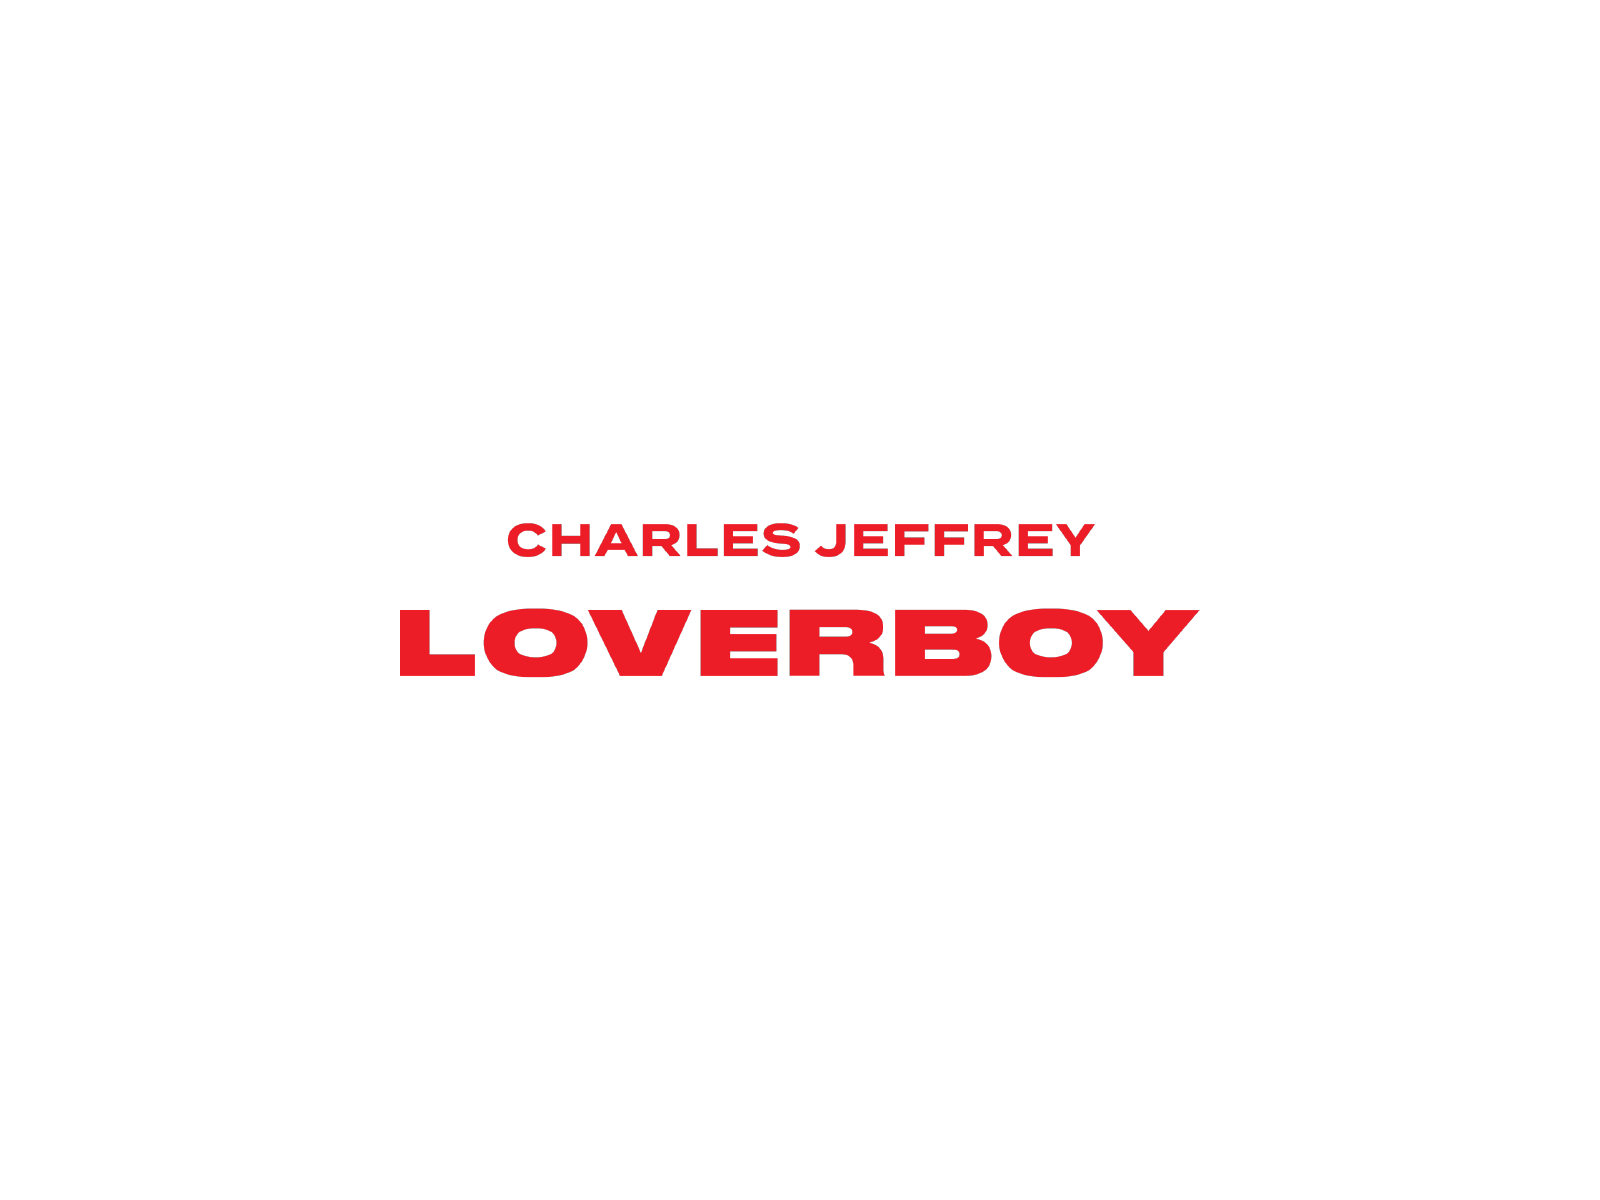 image of Charles Jeffrey LOVERBOY